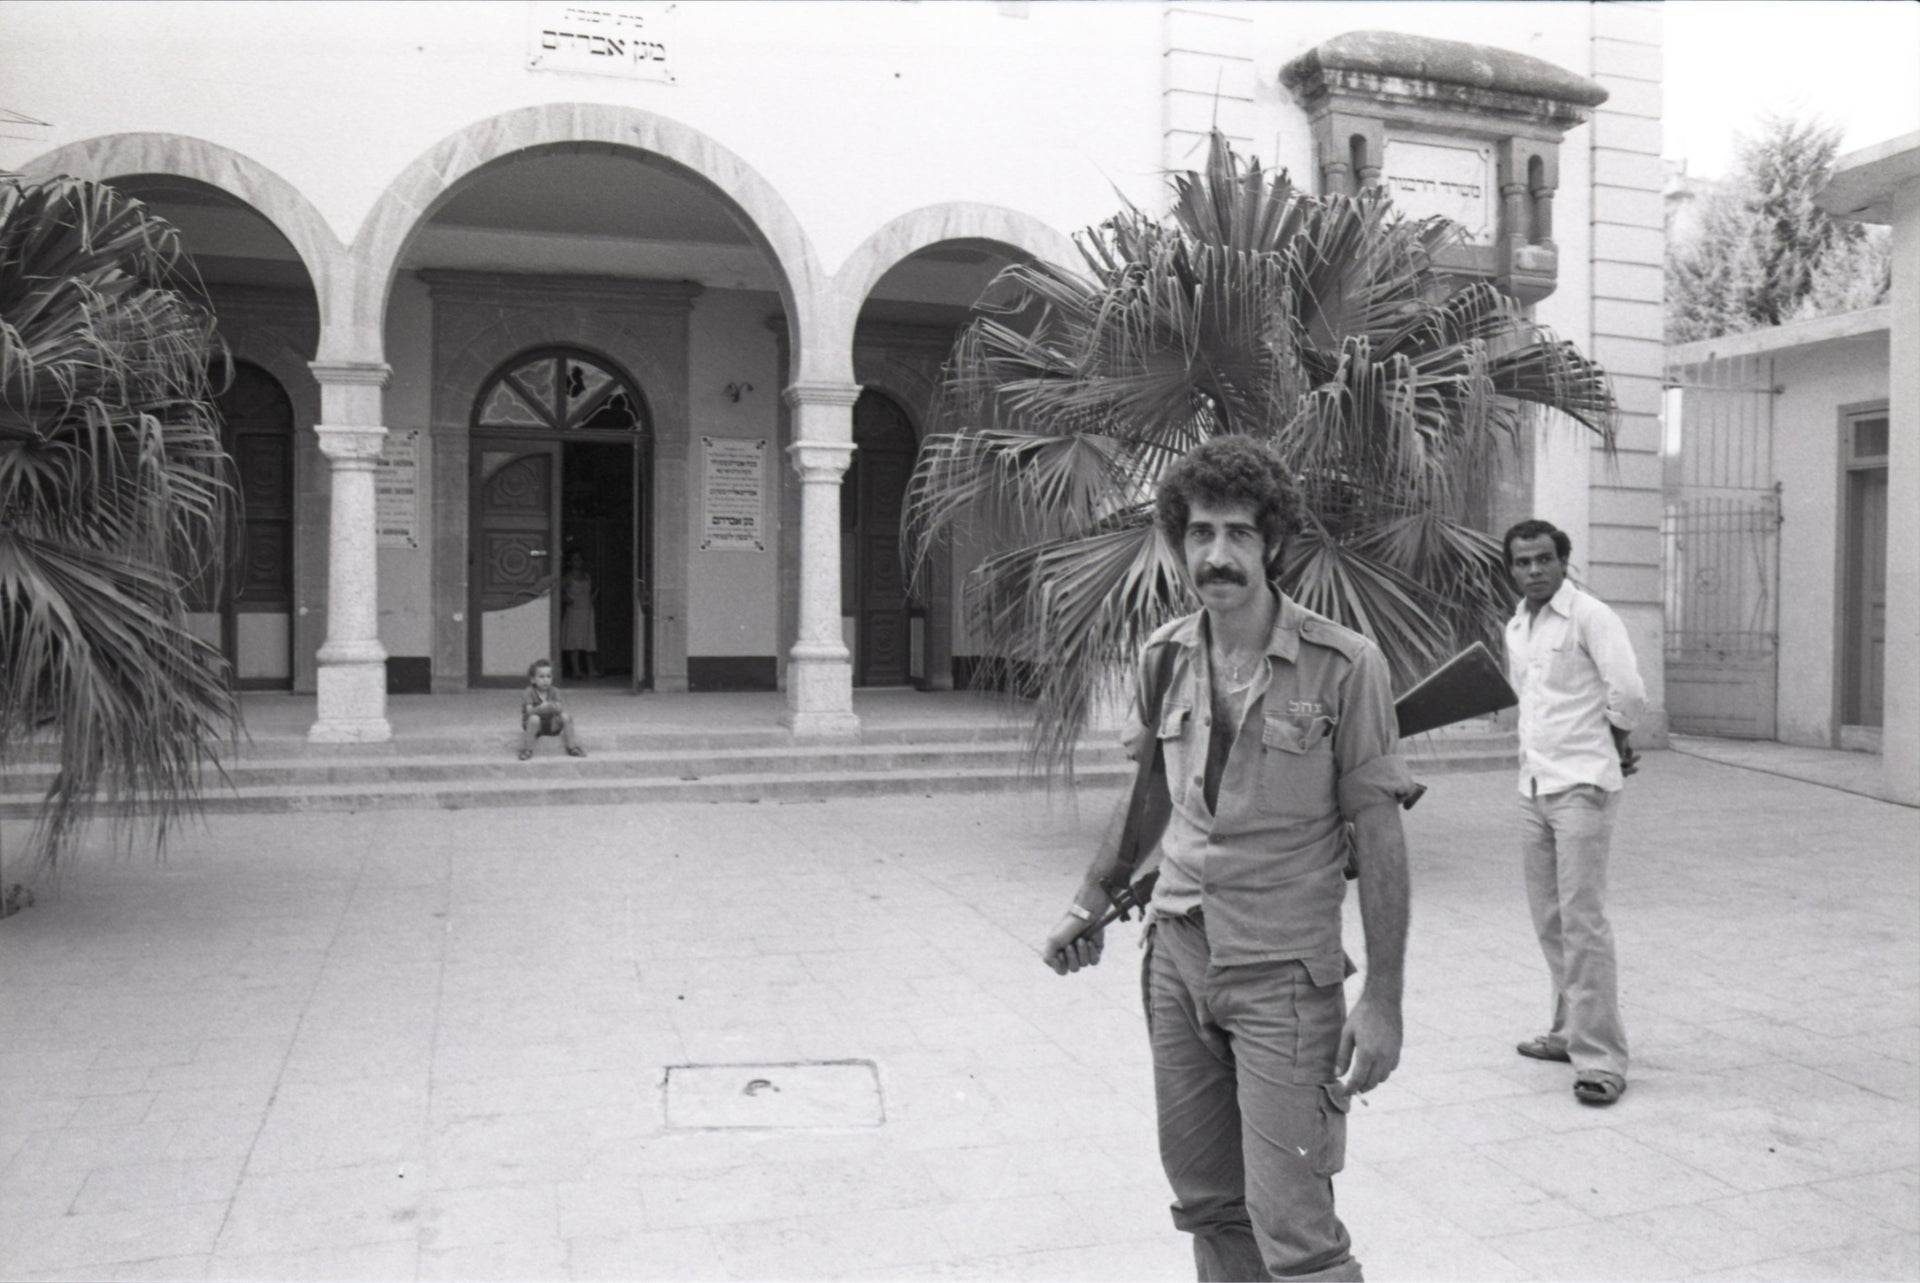 An Israeli soldier at the Magen Avraham Synagogue in Beirut during the first Lebanon war.